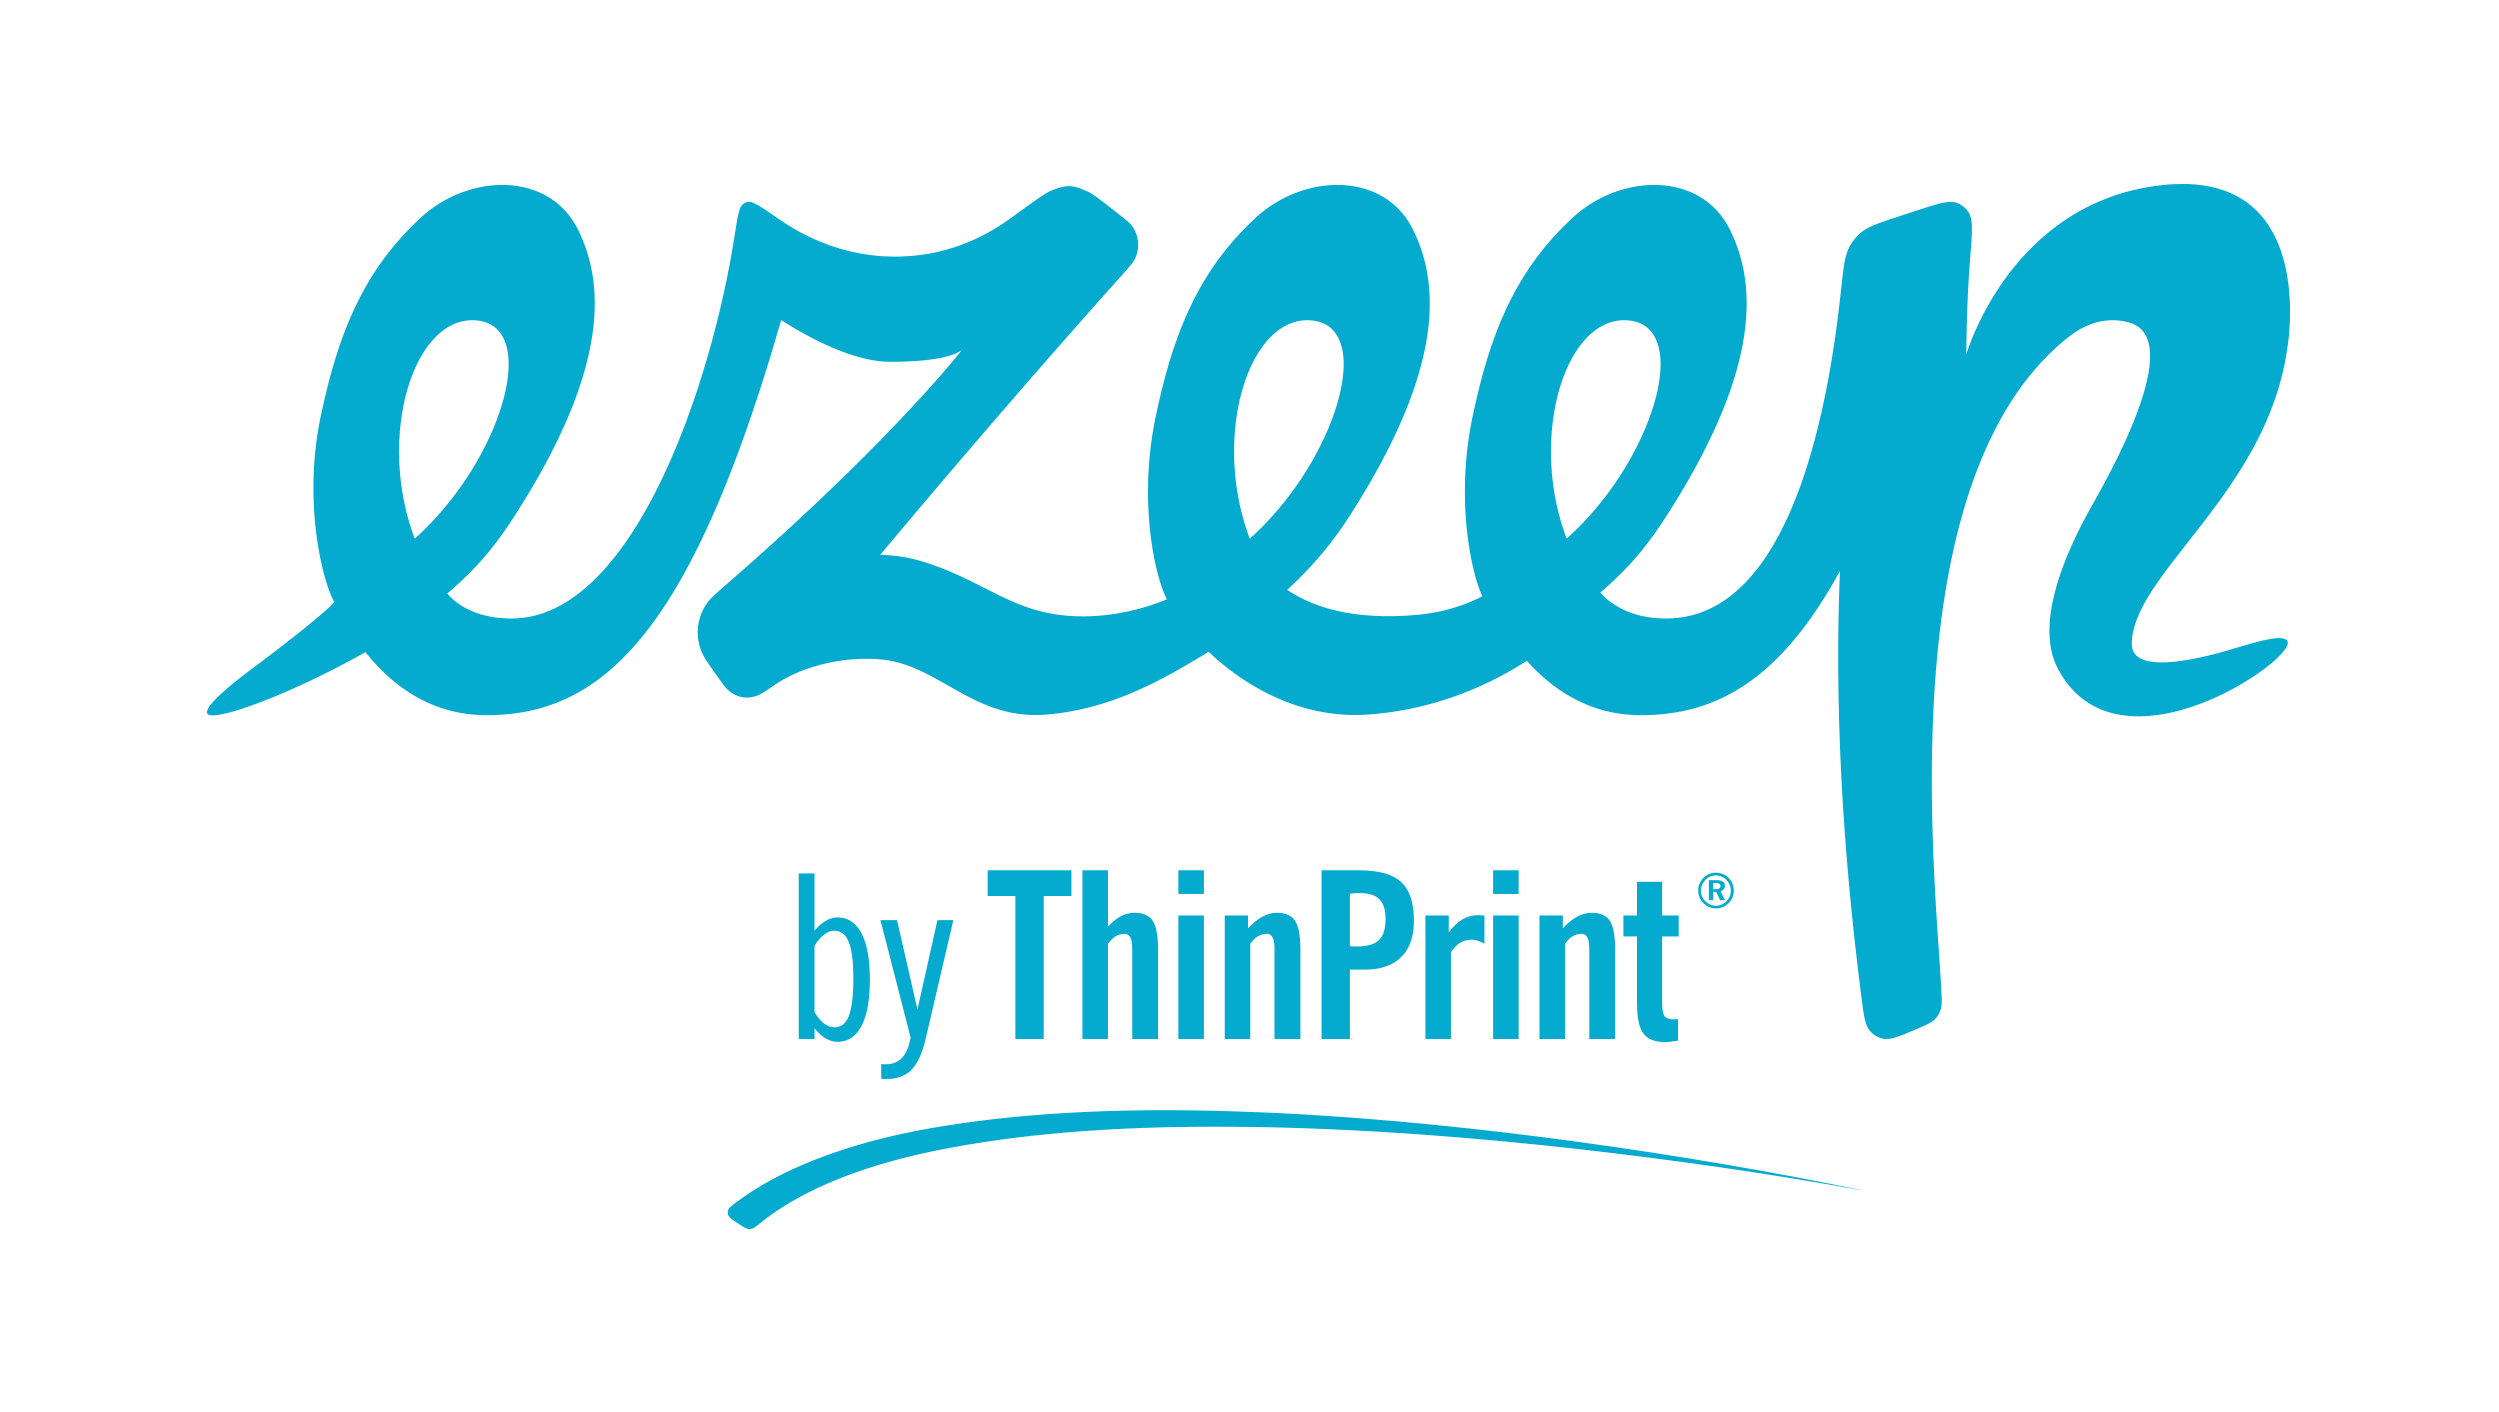 logo thinprint ezeep